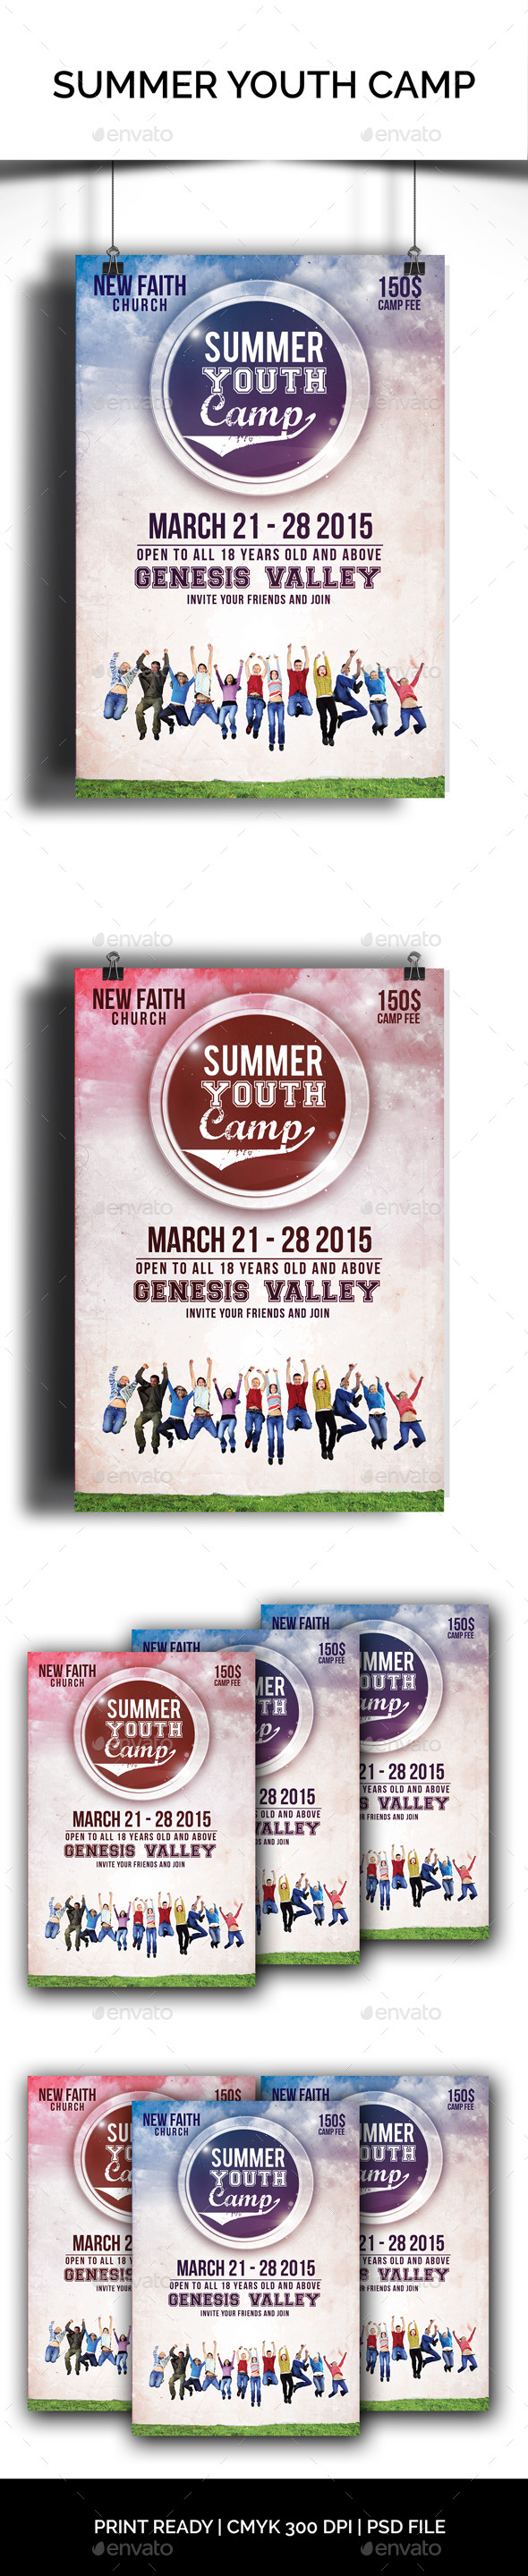 Summer Youth Camp - Church Flyers